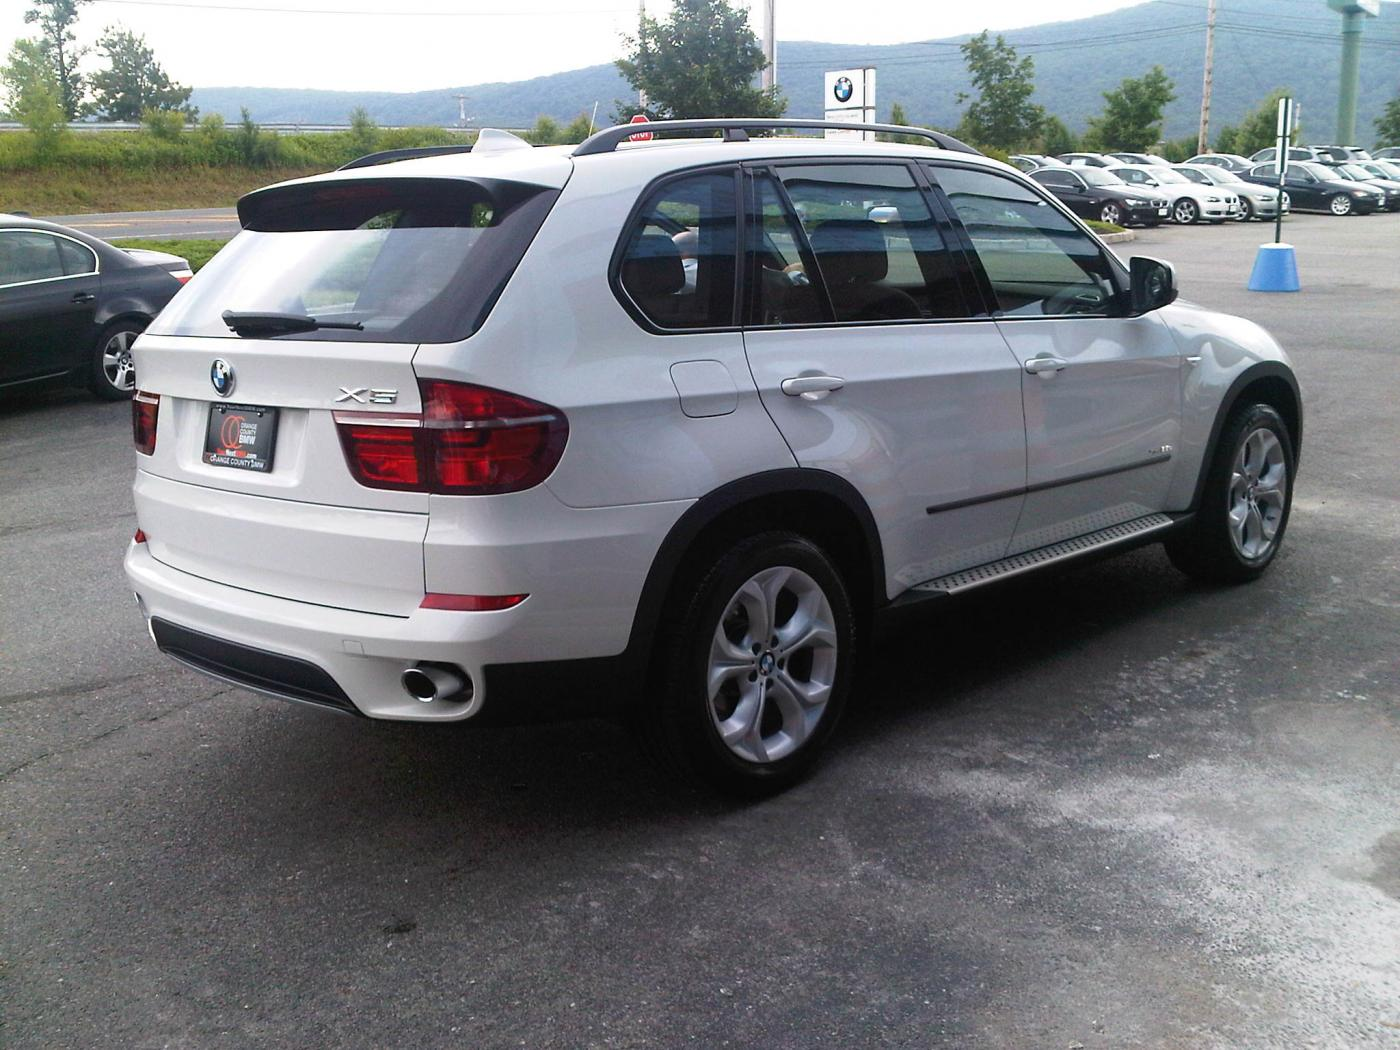 BMW X5 35d Ordered